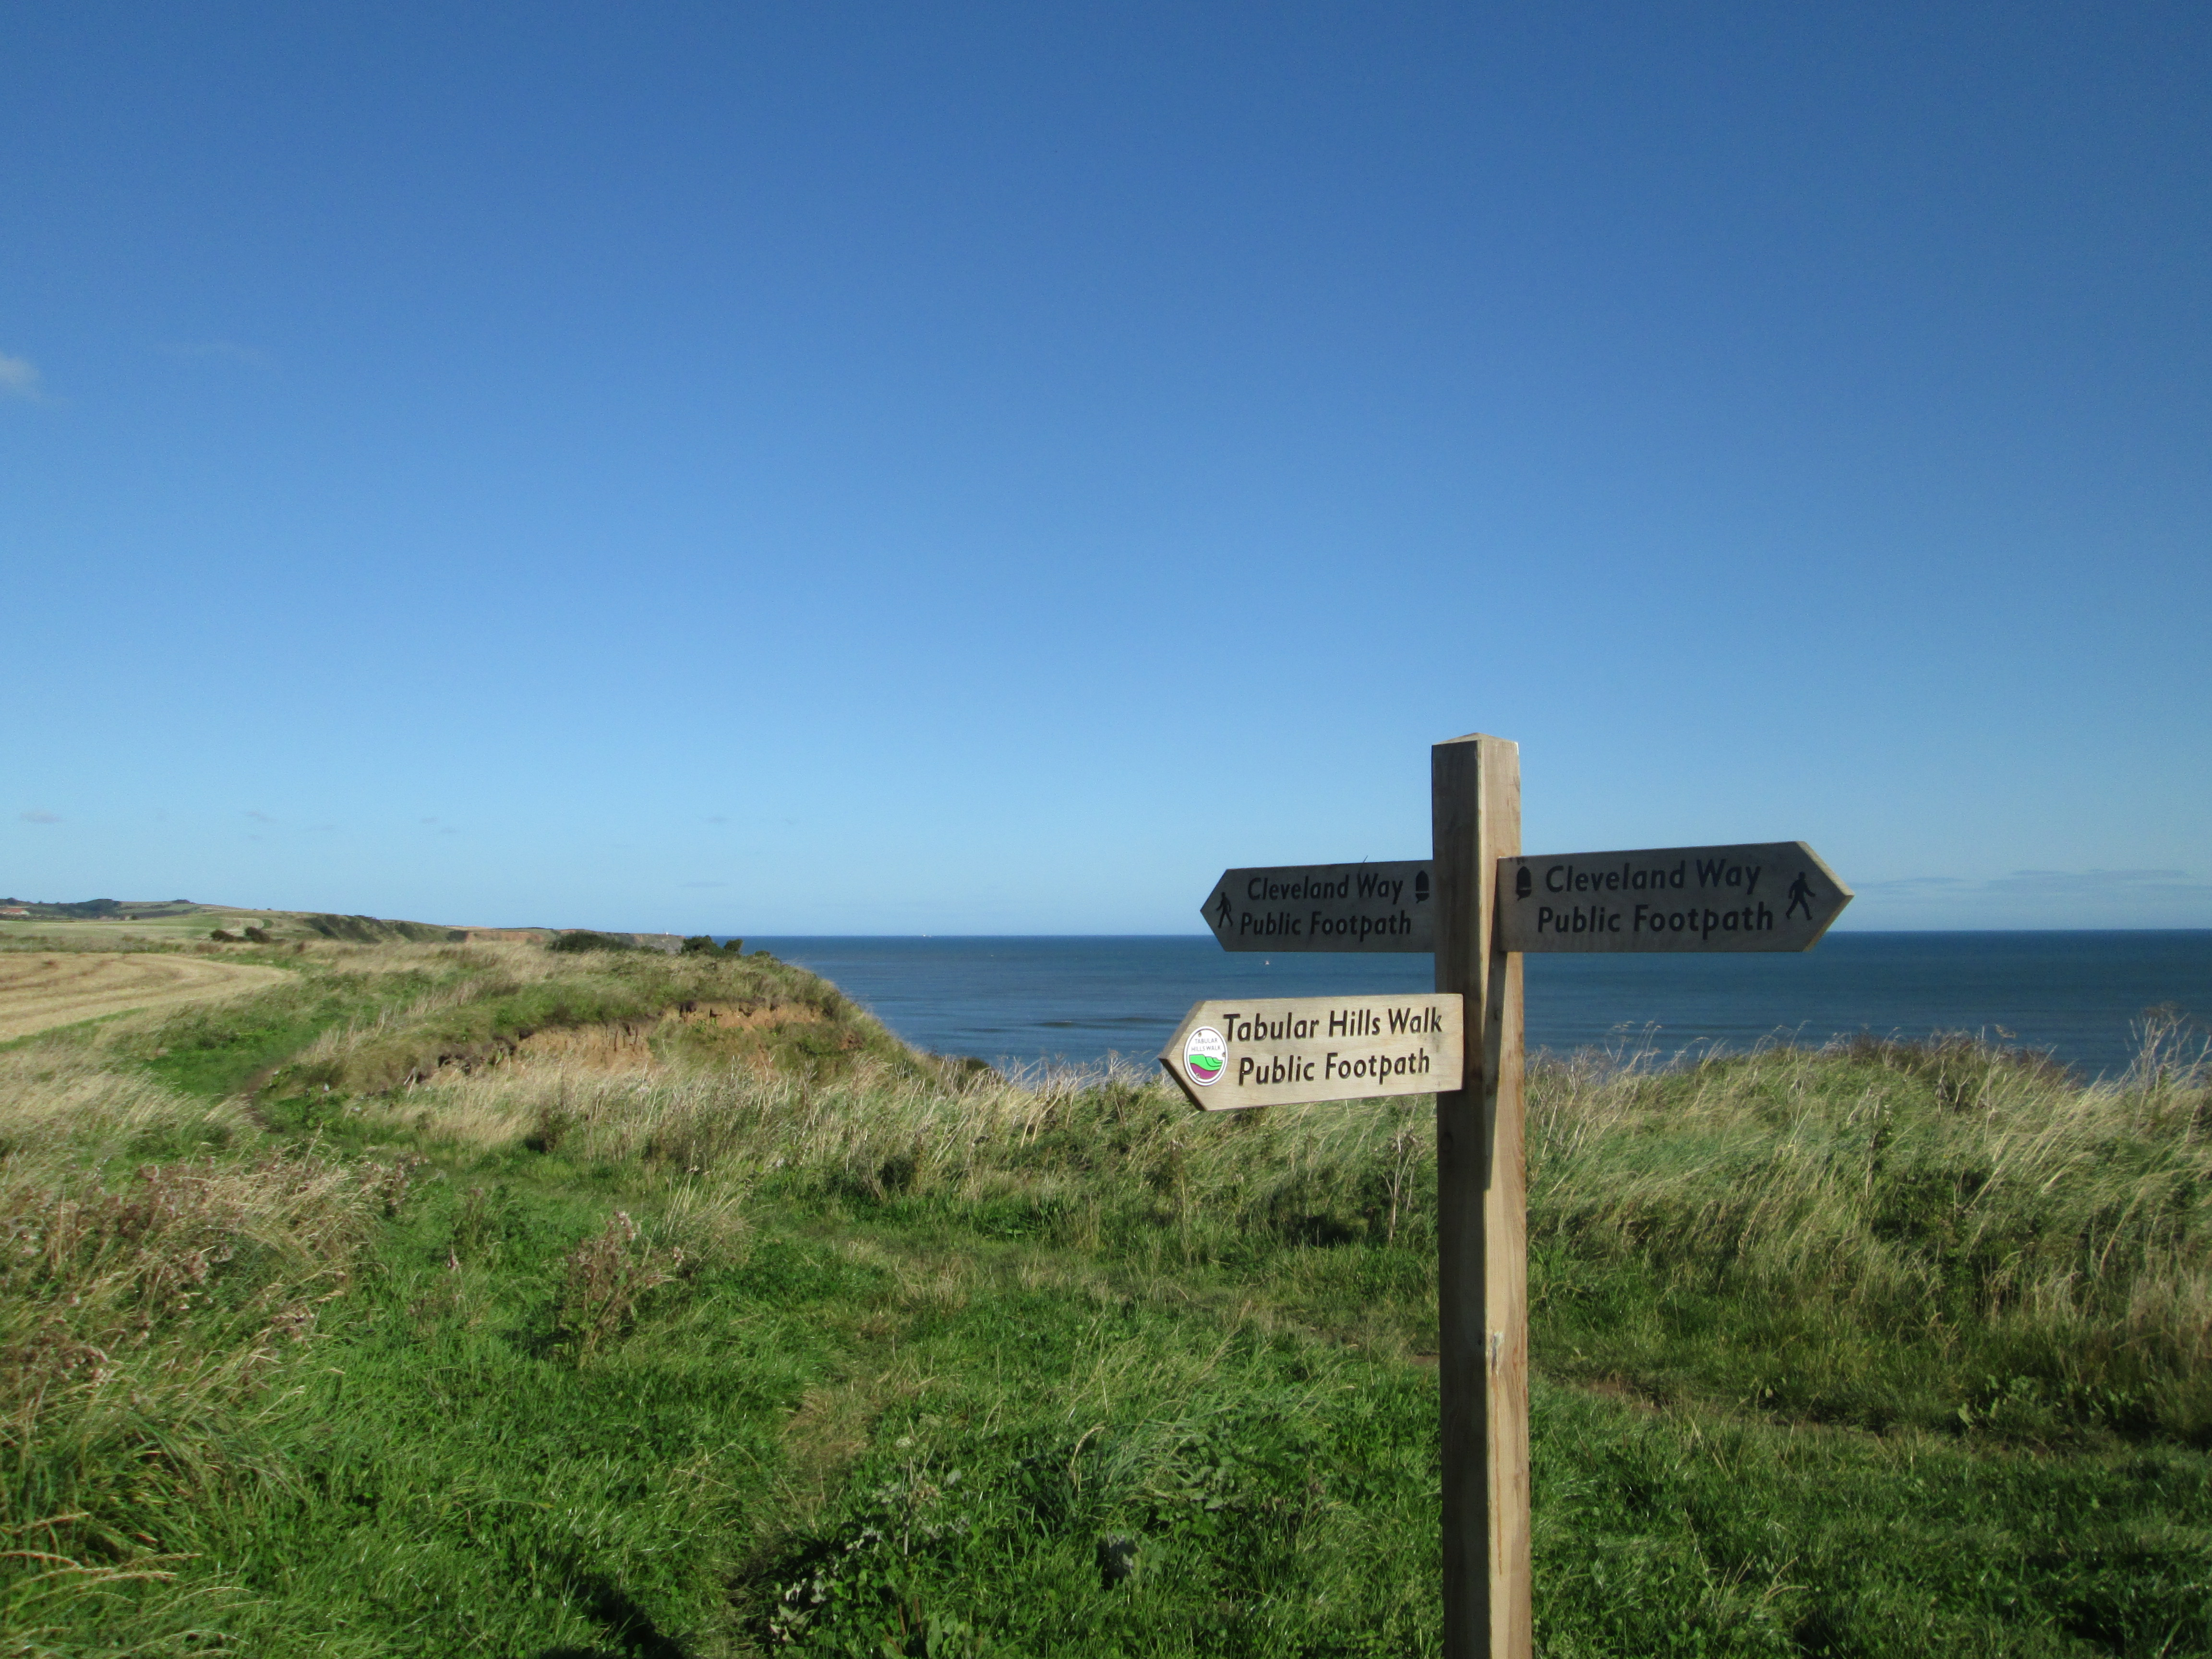 Tabular Hills Walk meets the Cleveland Way